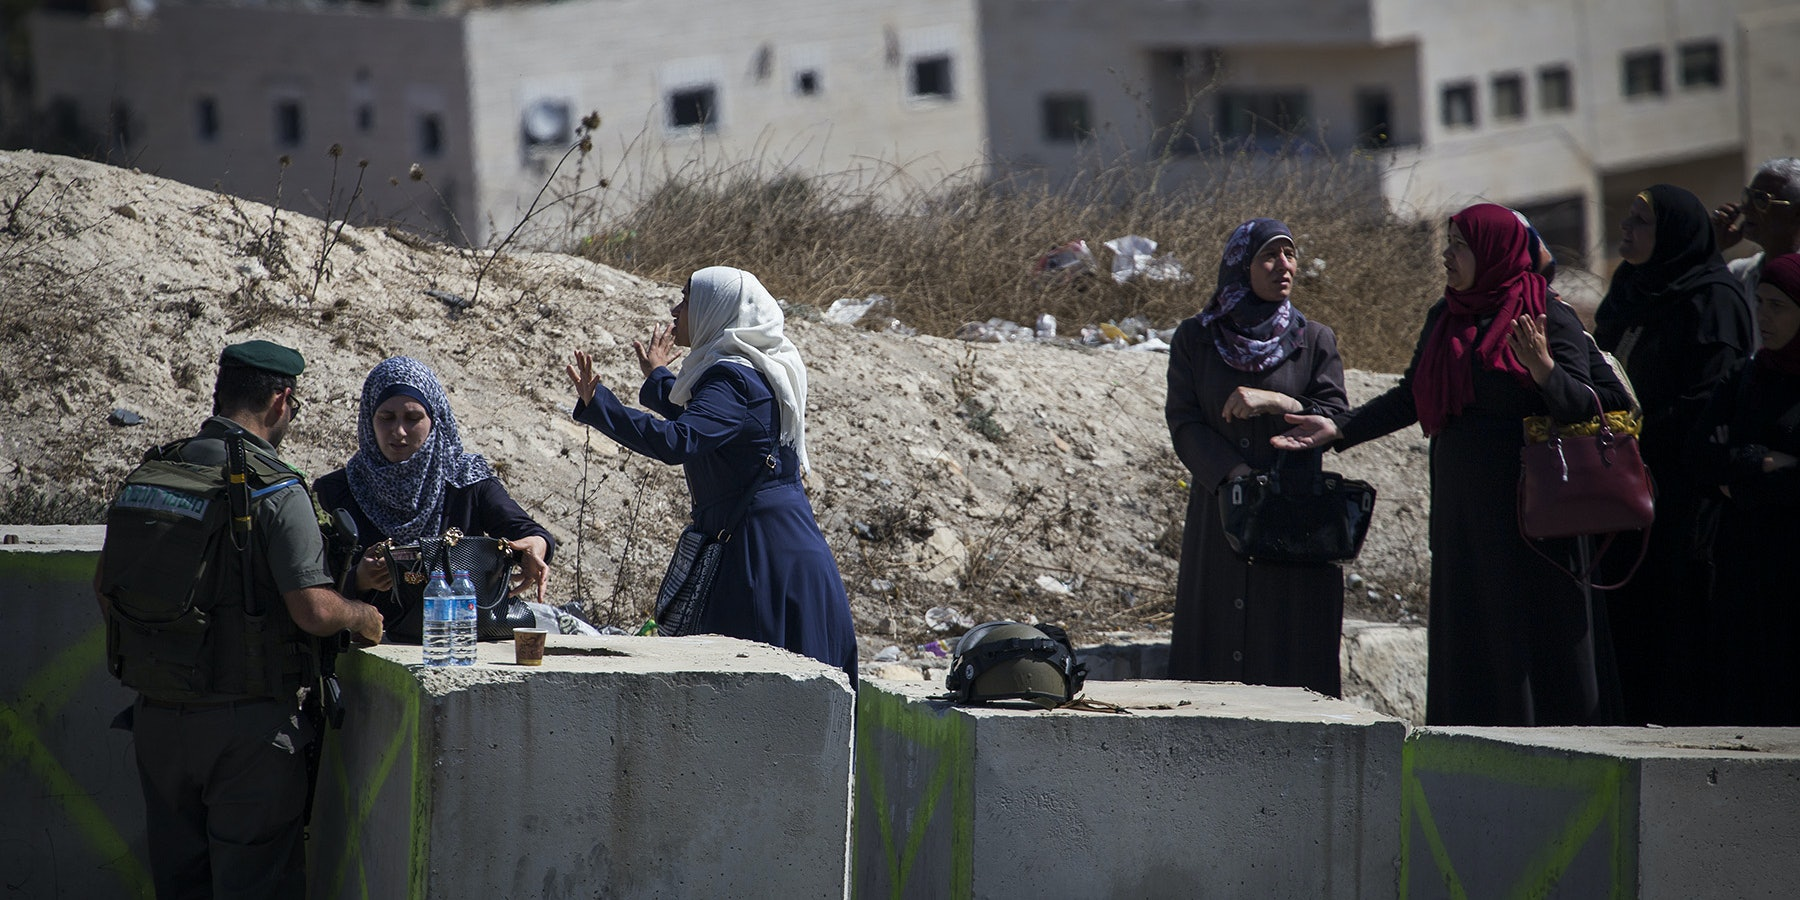 Israeli soldiers search Palestinians at a border checkpoint.